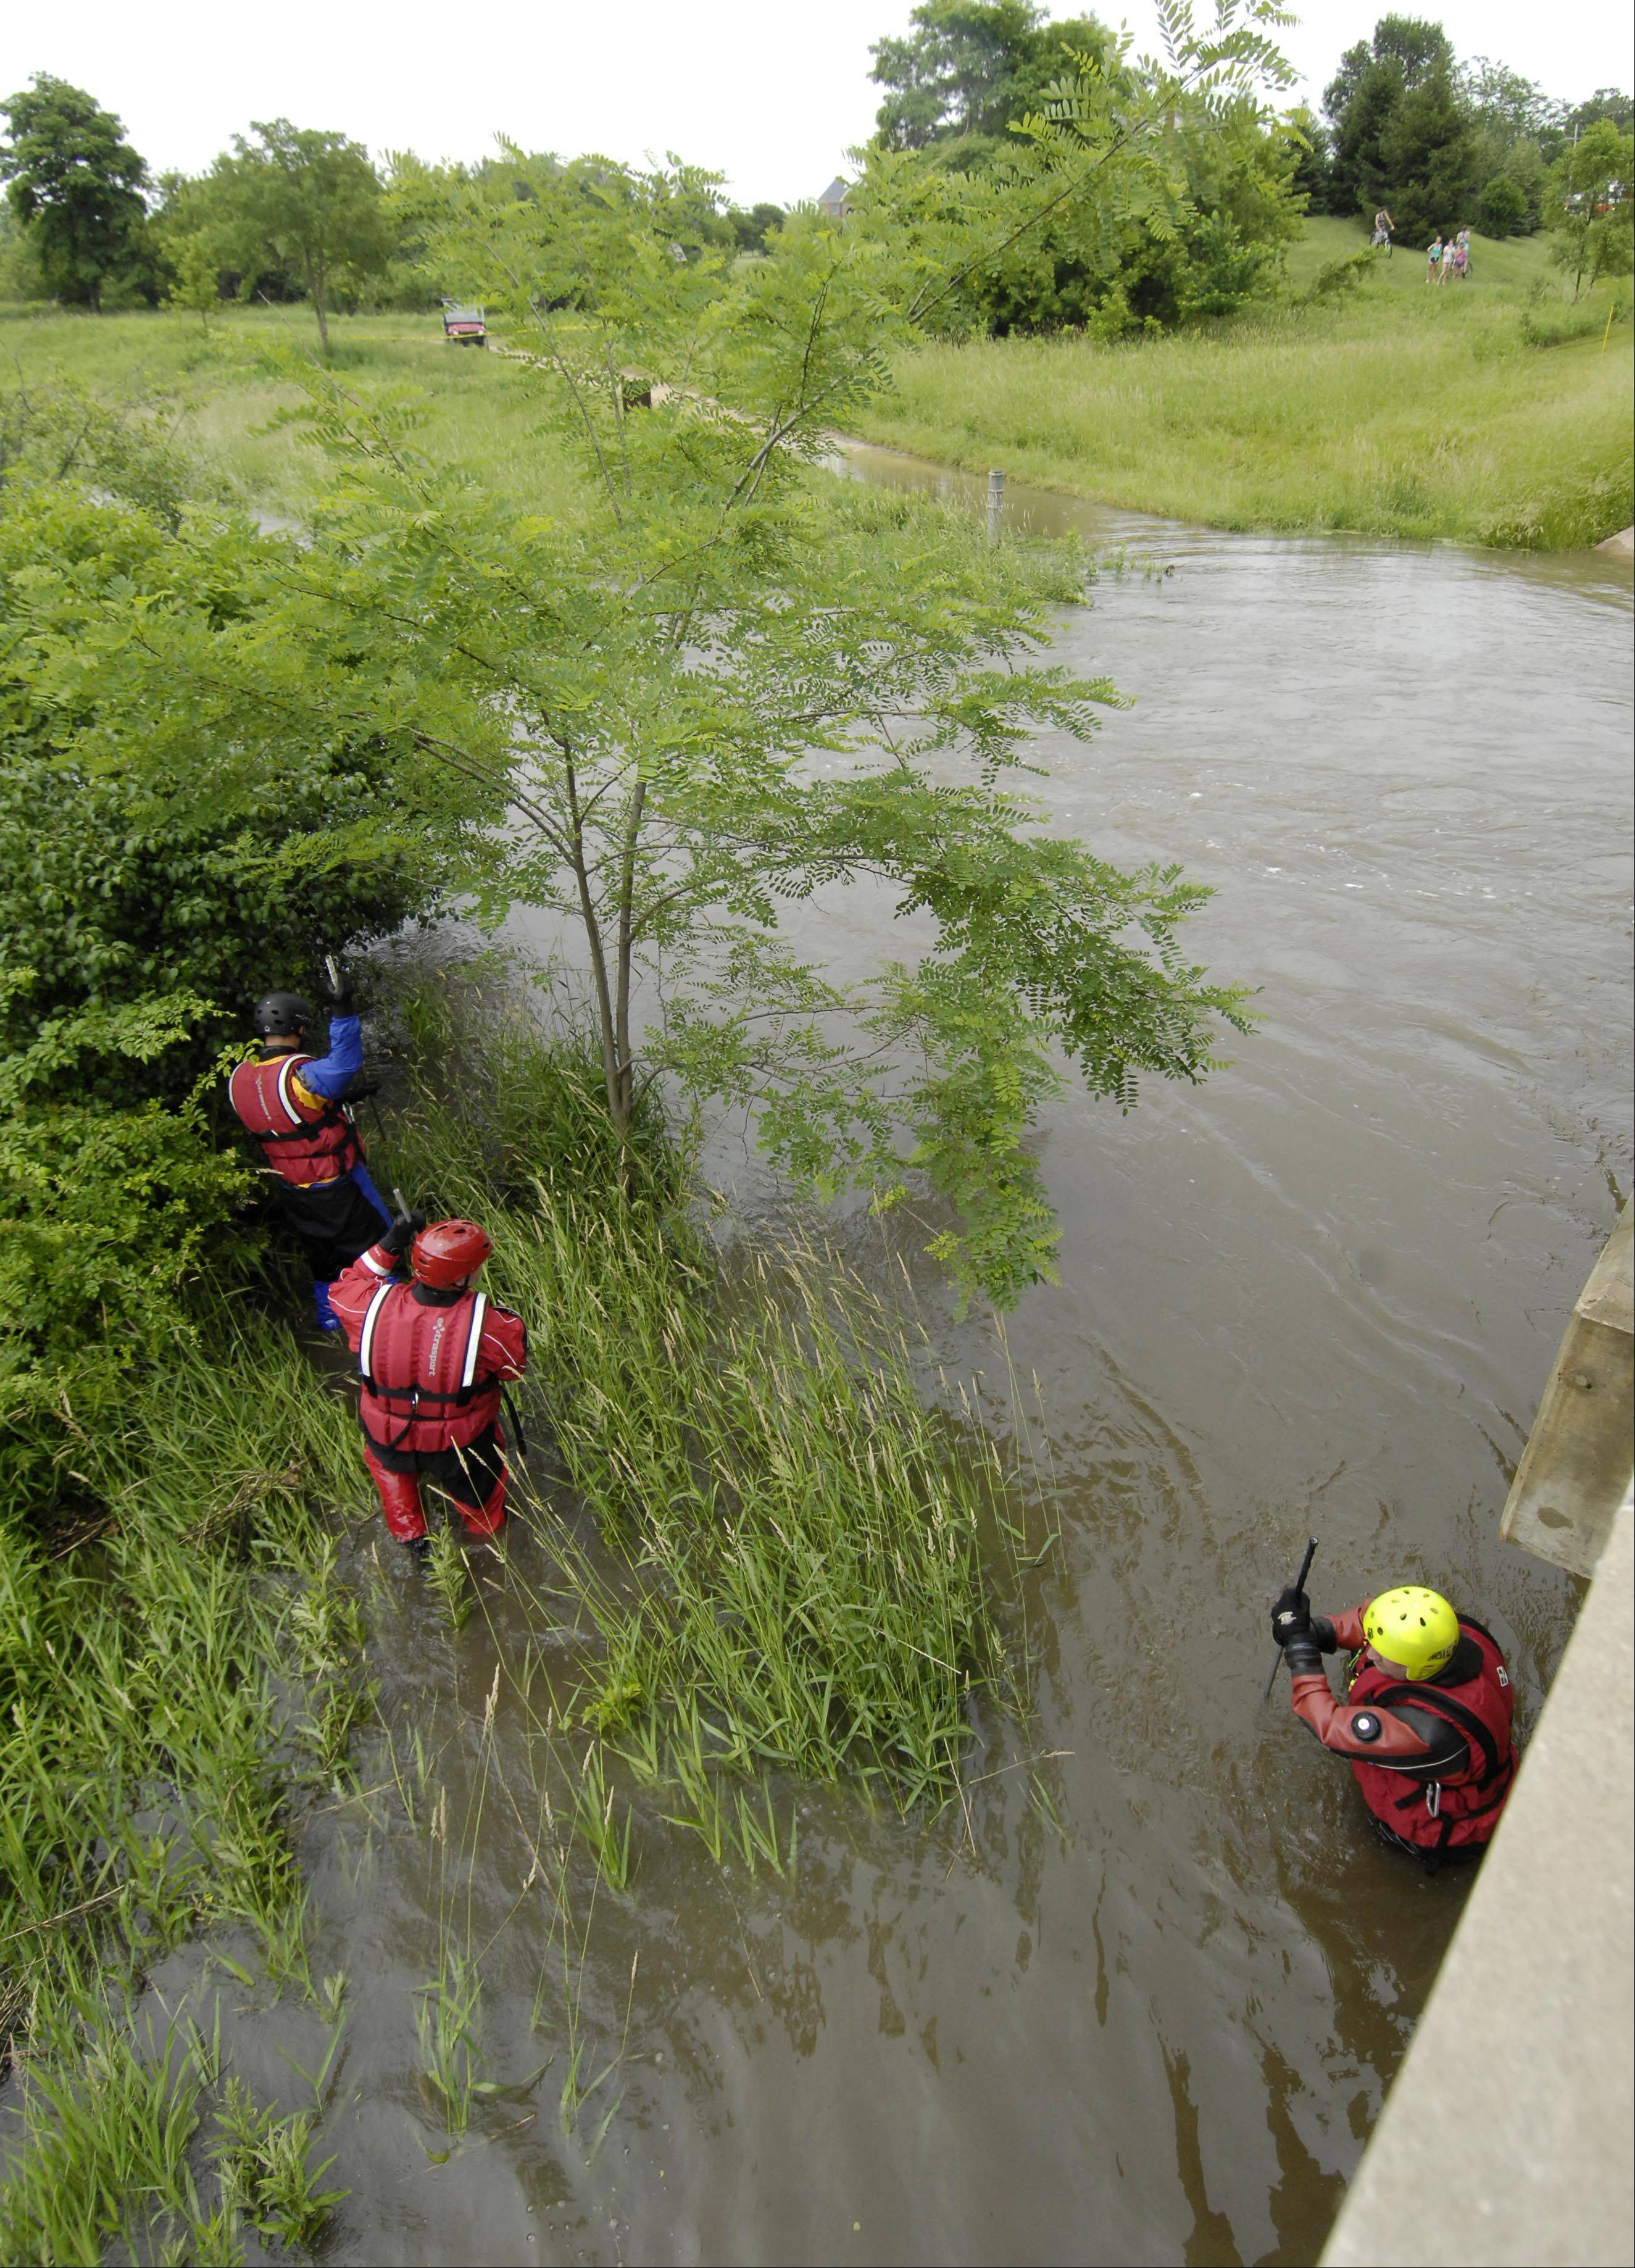 Rescuers look for a man and a dog who were reported swept away by a fast-moving creek in the Grassy Lake Forest Preserve near Lake Barrington.